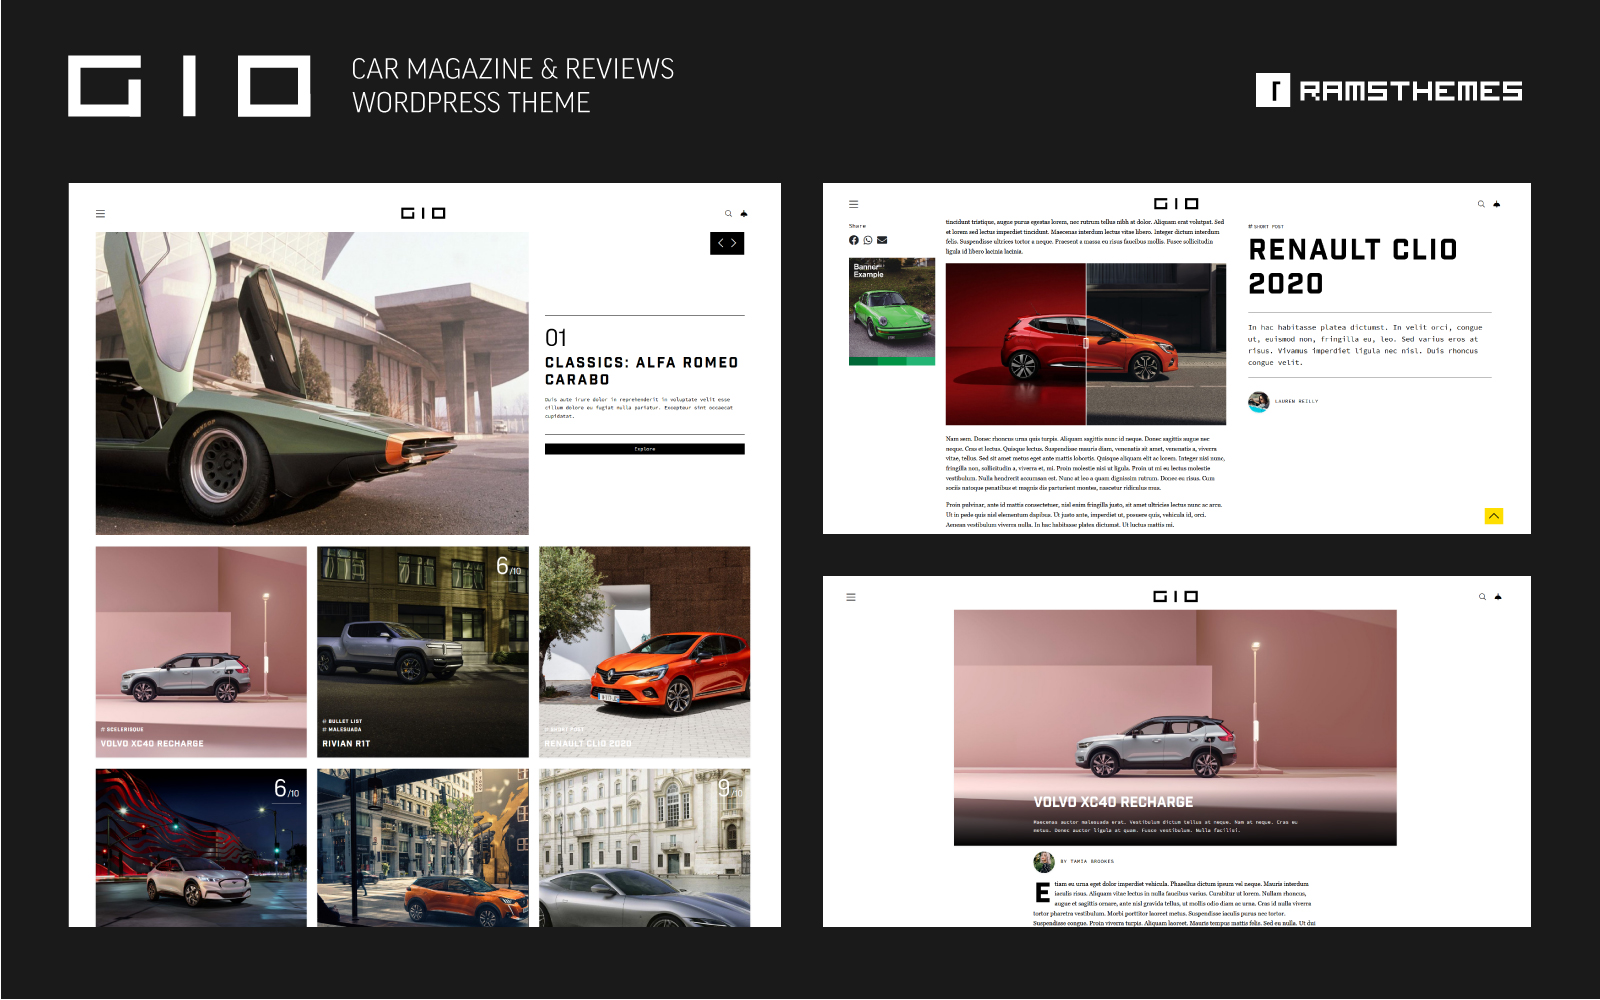 GIO - Car Magazine WordPress Theme